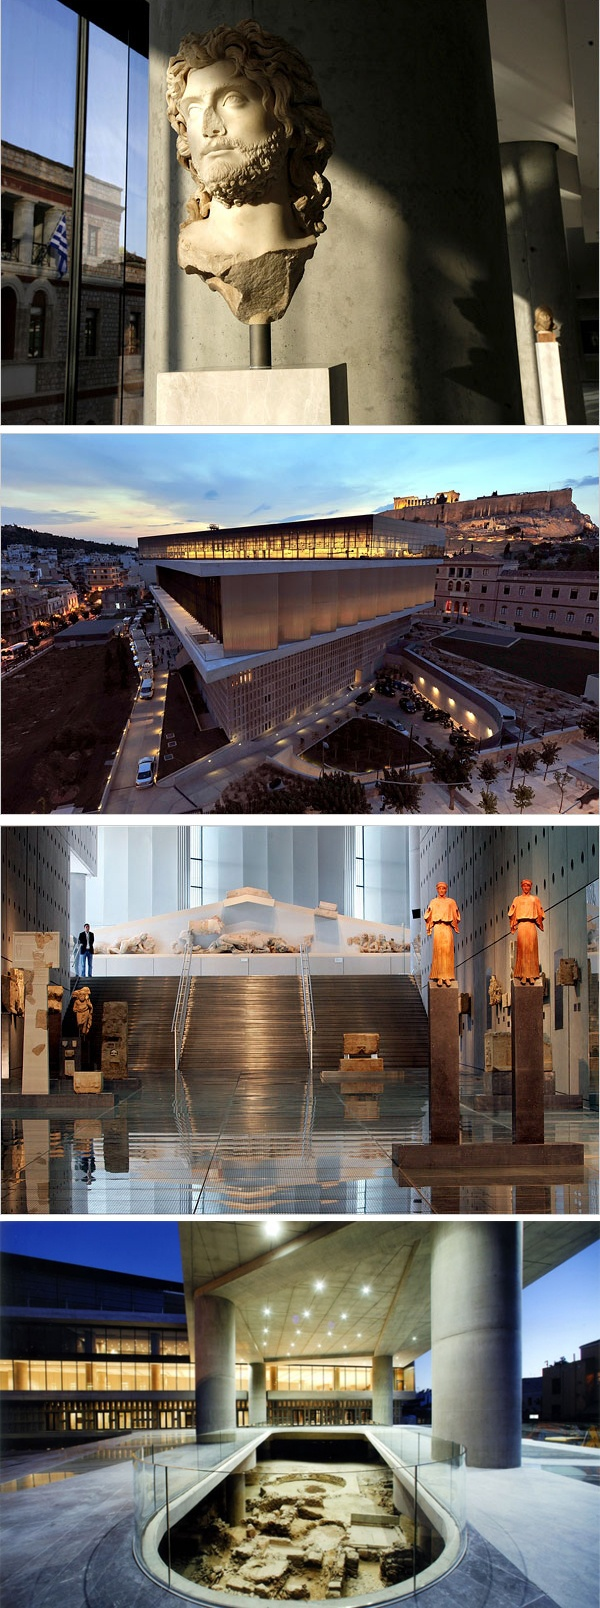 The New Acropolis Museum is considered to be one of the most important museums in the world. After 9 years and at a cost 150€ million it is indeed a modern masterpiece housing the world's most precious artifacts. It is situated near the base of the Acropolis with a direct view of the Parthenon.  Its foundations are a key feature of the building, which can be seen through the glass floors. They are designed in such way that let the building afloat above the ruins of the ancient city.